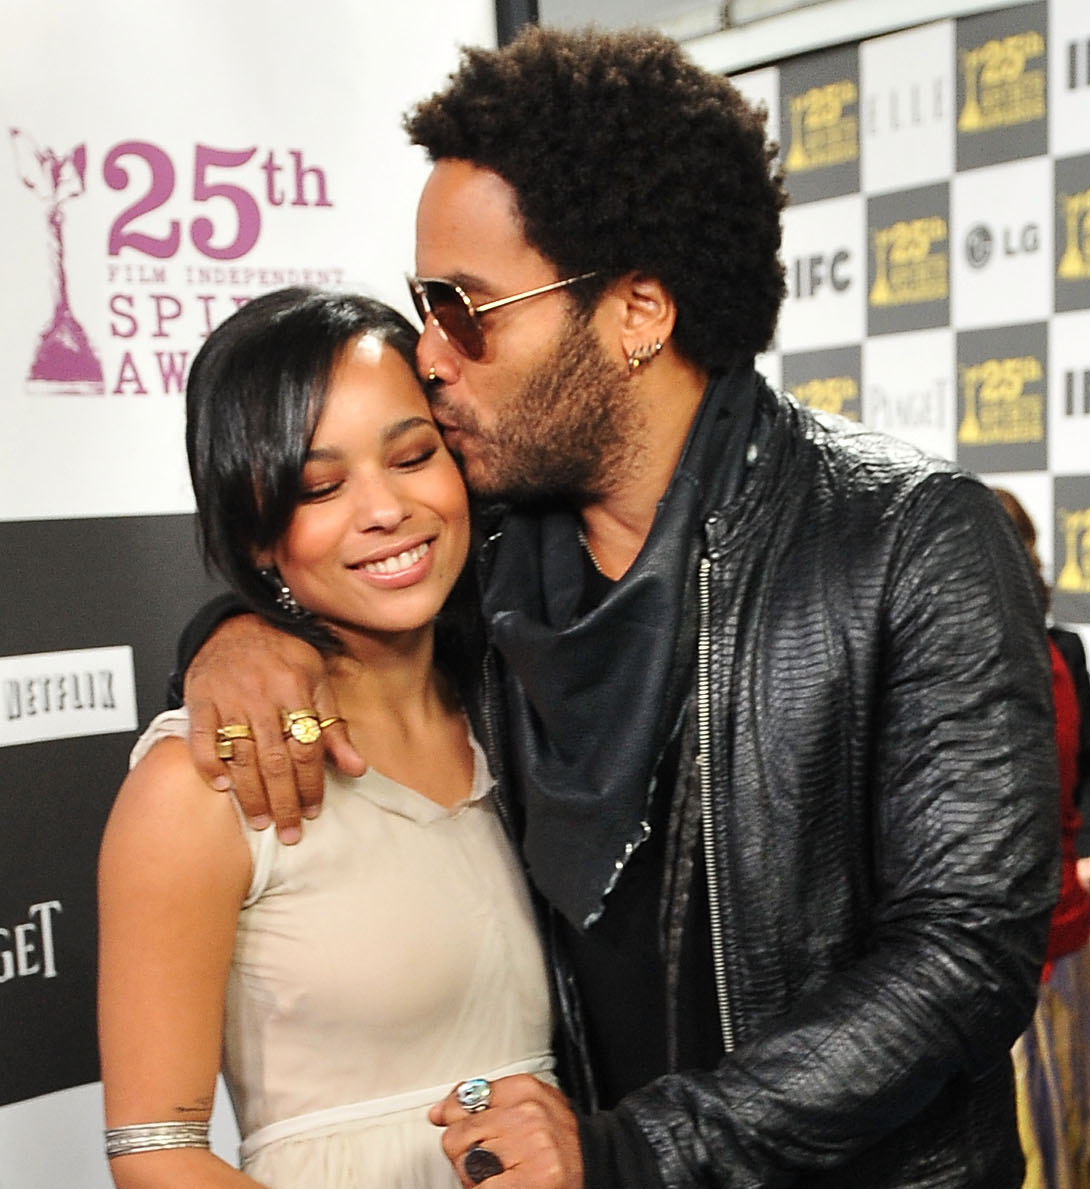 The 54-year old son of father Sy Kravitz and mother Roxie Roker Lenny Kravitz in 2018 photo. Lenny Kravitz earned a  million dollar salary - leaving the net worth at 30 million in 2018